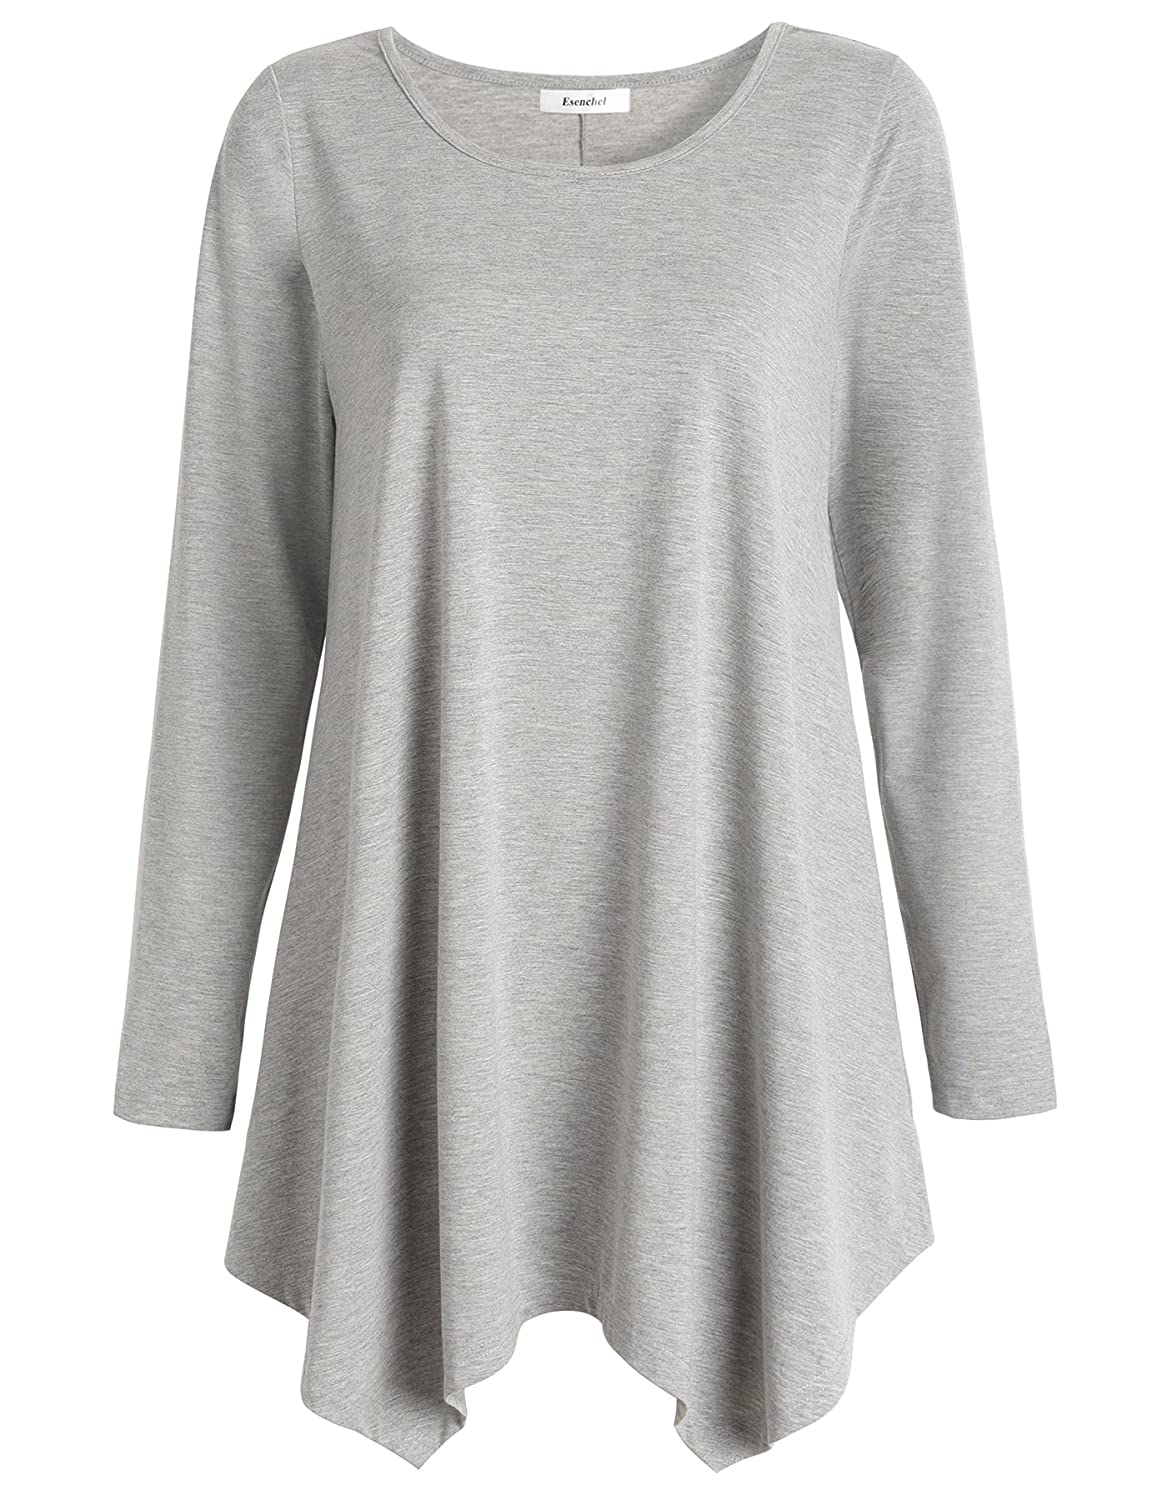 642c1927986 Features flattering swing style, long sleeve, scoop neck top with  handkerchief hemline. Stretchy fabric provides soft feeling against skin